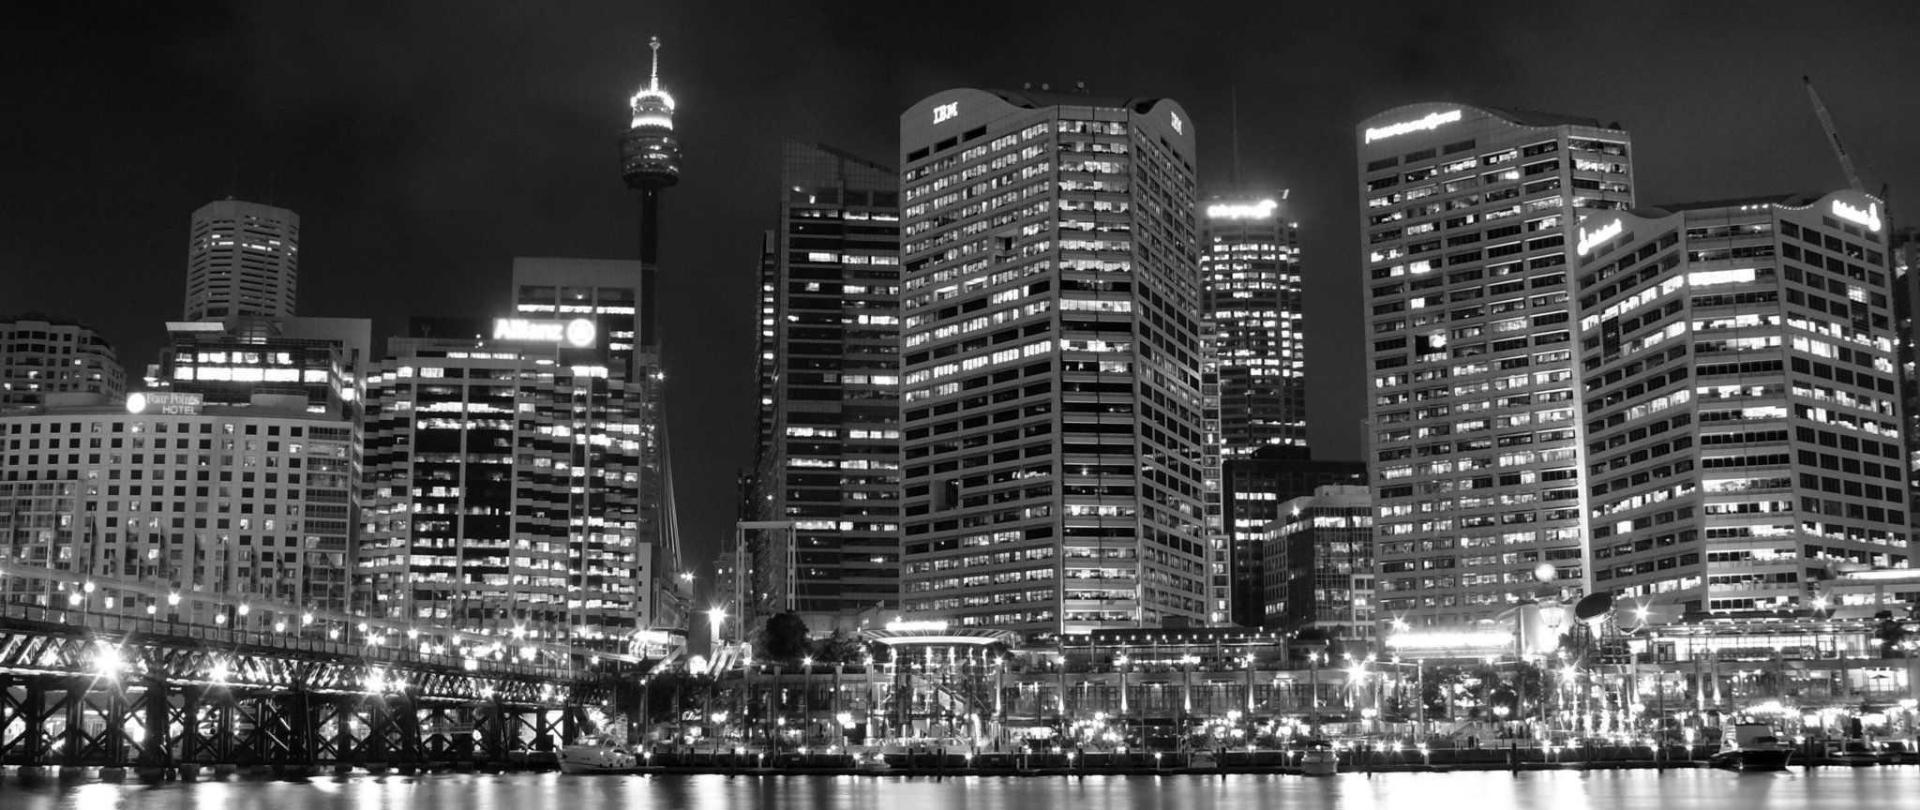 city-of-sydney-at-night-1220086.jpg